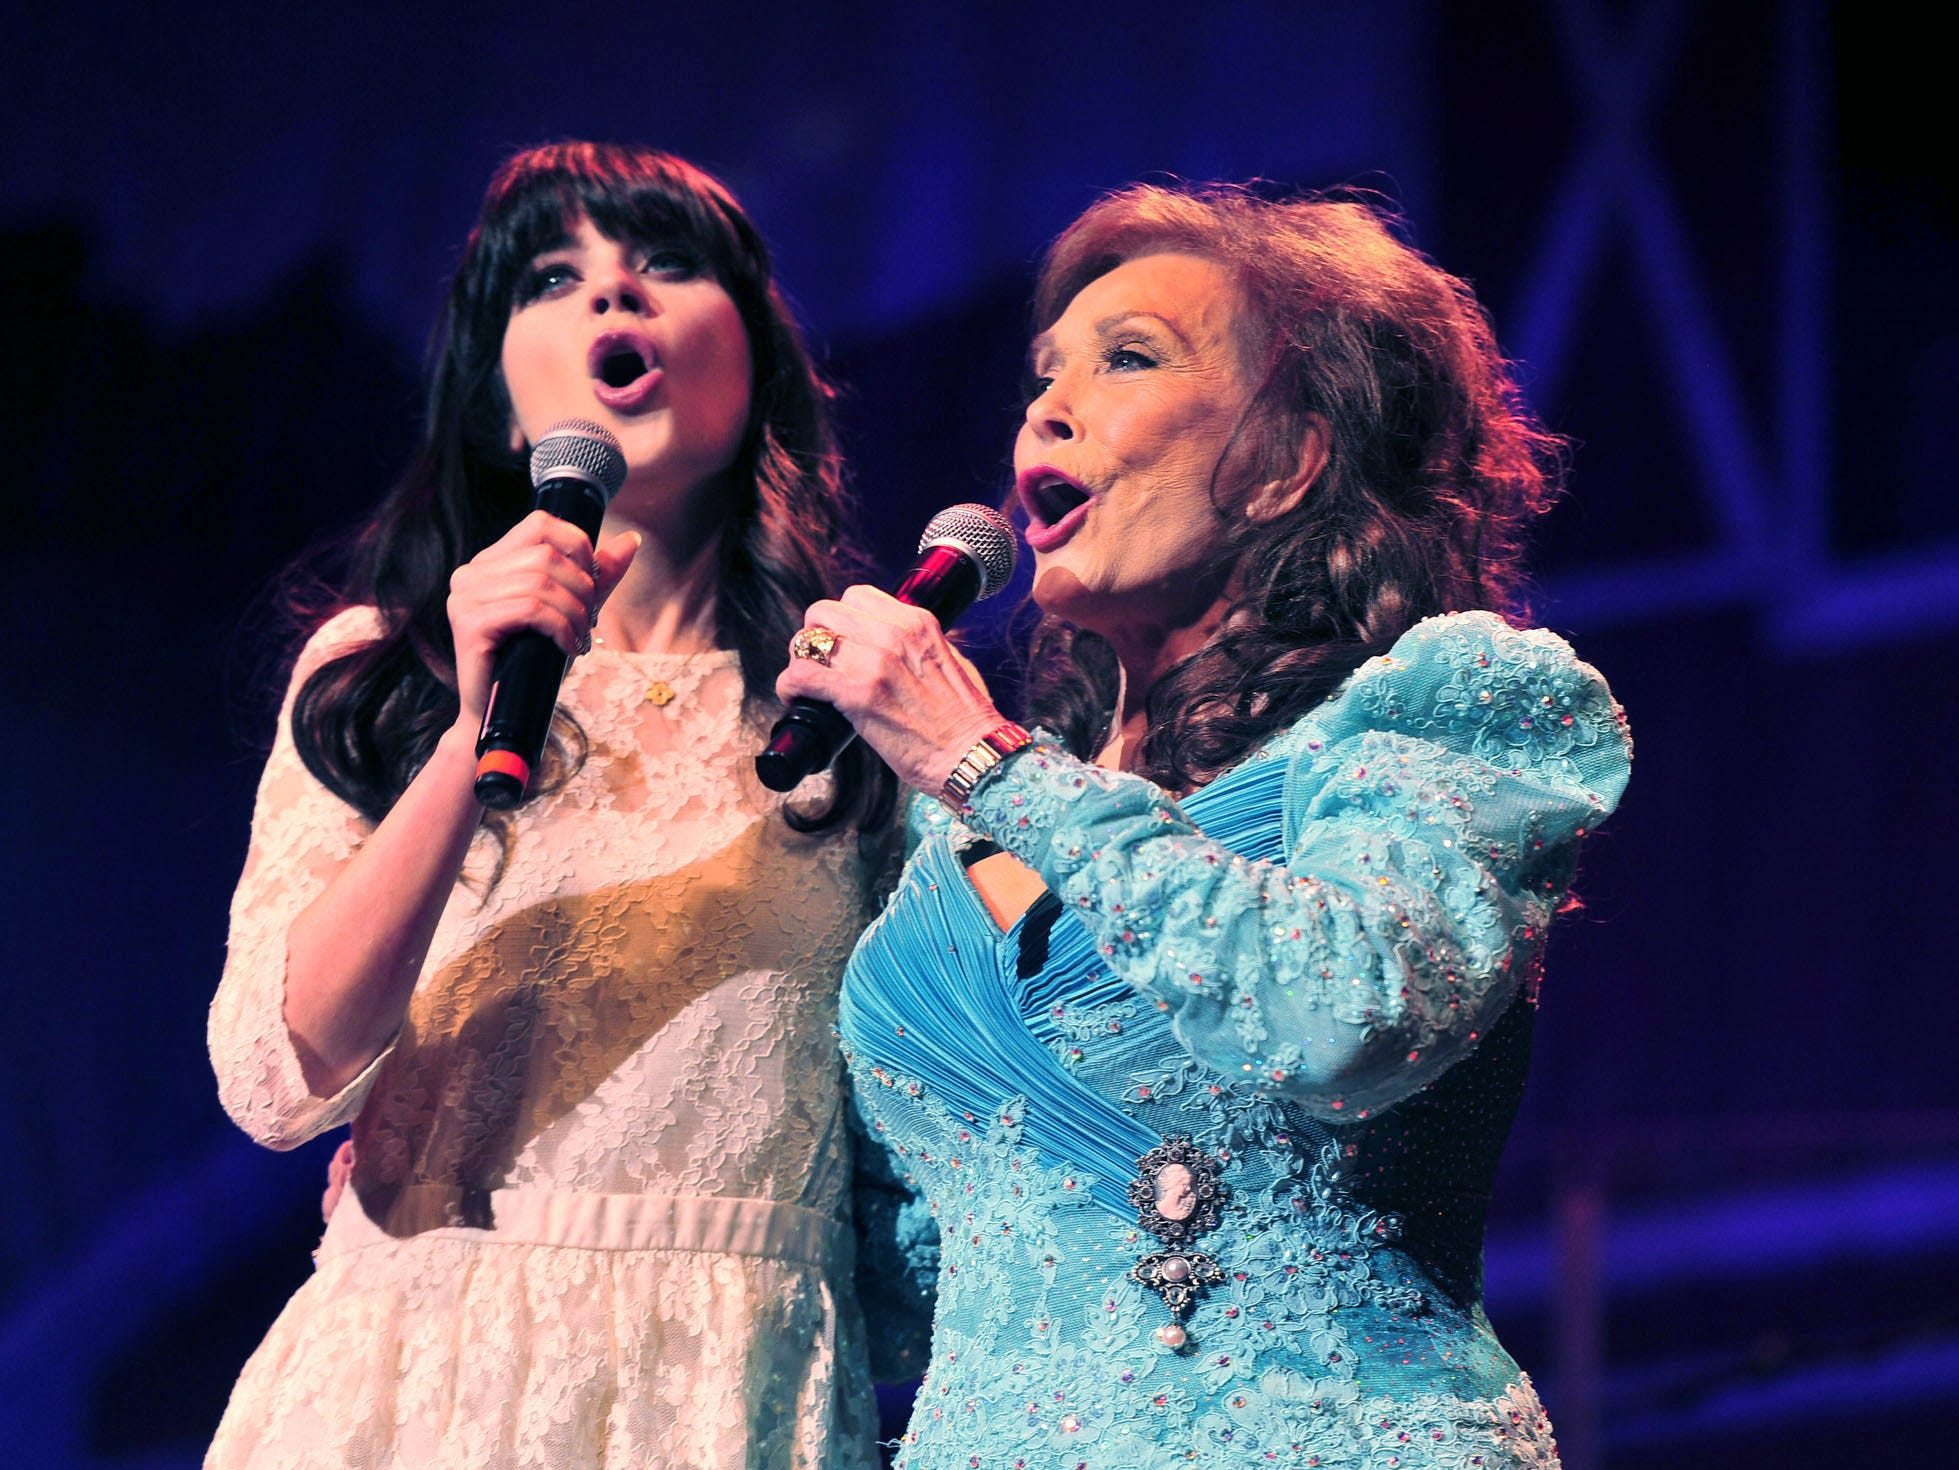 """Zooey Deschanel, left, joins Loretta Lynn onstage to sing """"Coal Miner's Daughter"""" at the Ryman Auditorium on May 10, 2012, in Nashville. Deschanel will play Lynn in a stage version of """"Coal Miner's Daughter."""""""